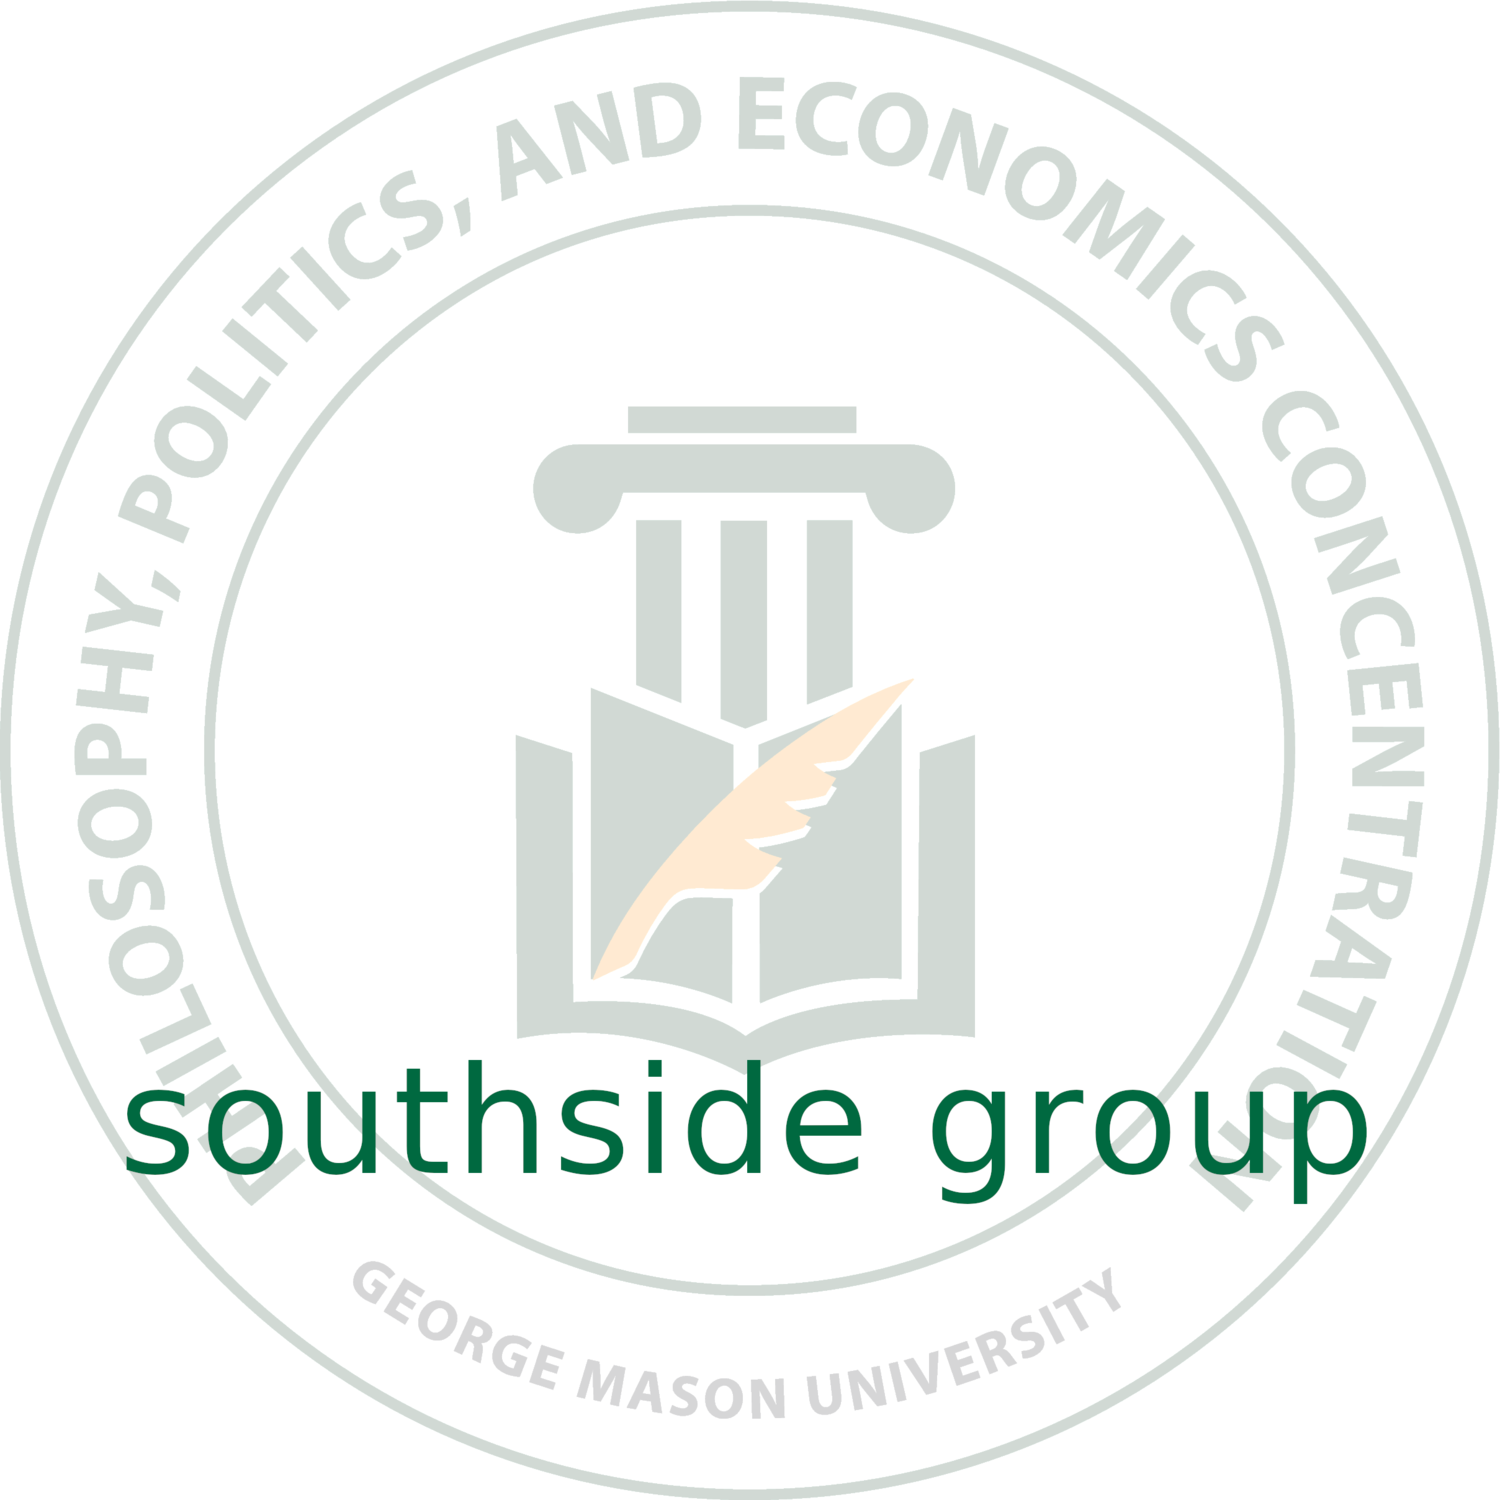 southside group -- February 28 -- 2. The Color of Law and a Consumer's Republic